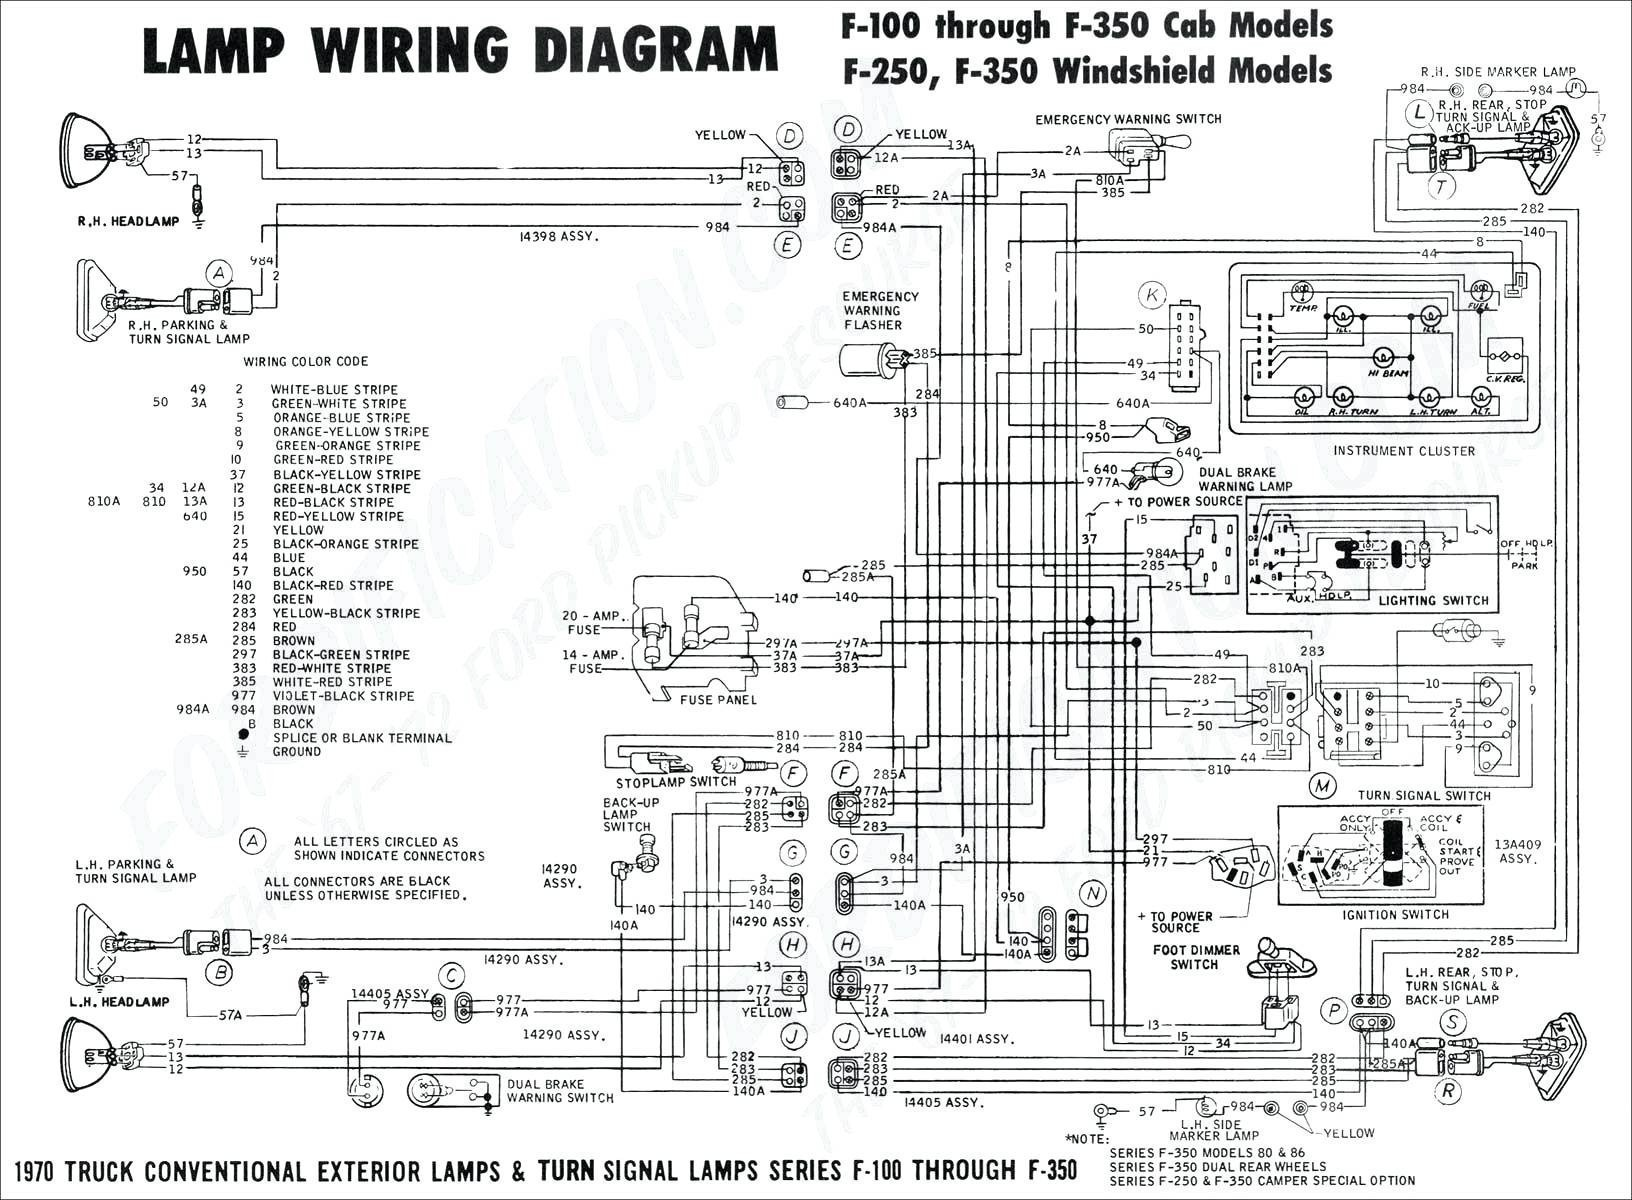 Mitsubishi Pajero Engine Diagram 2001 Mitsubishi Eclipse Wiring Diagram Shahsramblings Of Mitsubishi Pajero Engine Diagram